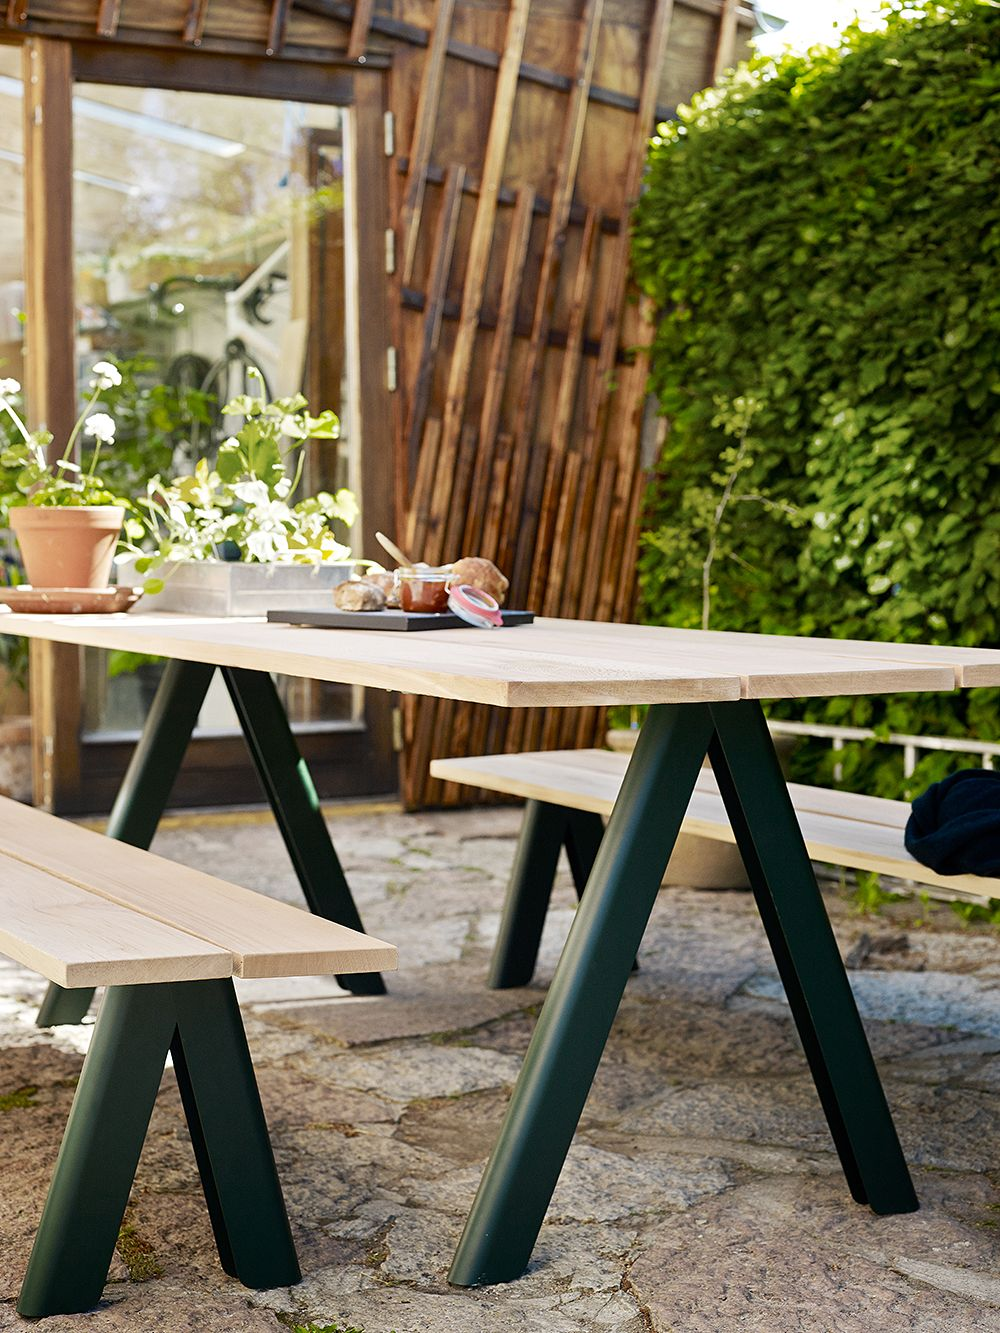 Skagerak Overlap table and benches